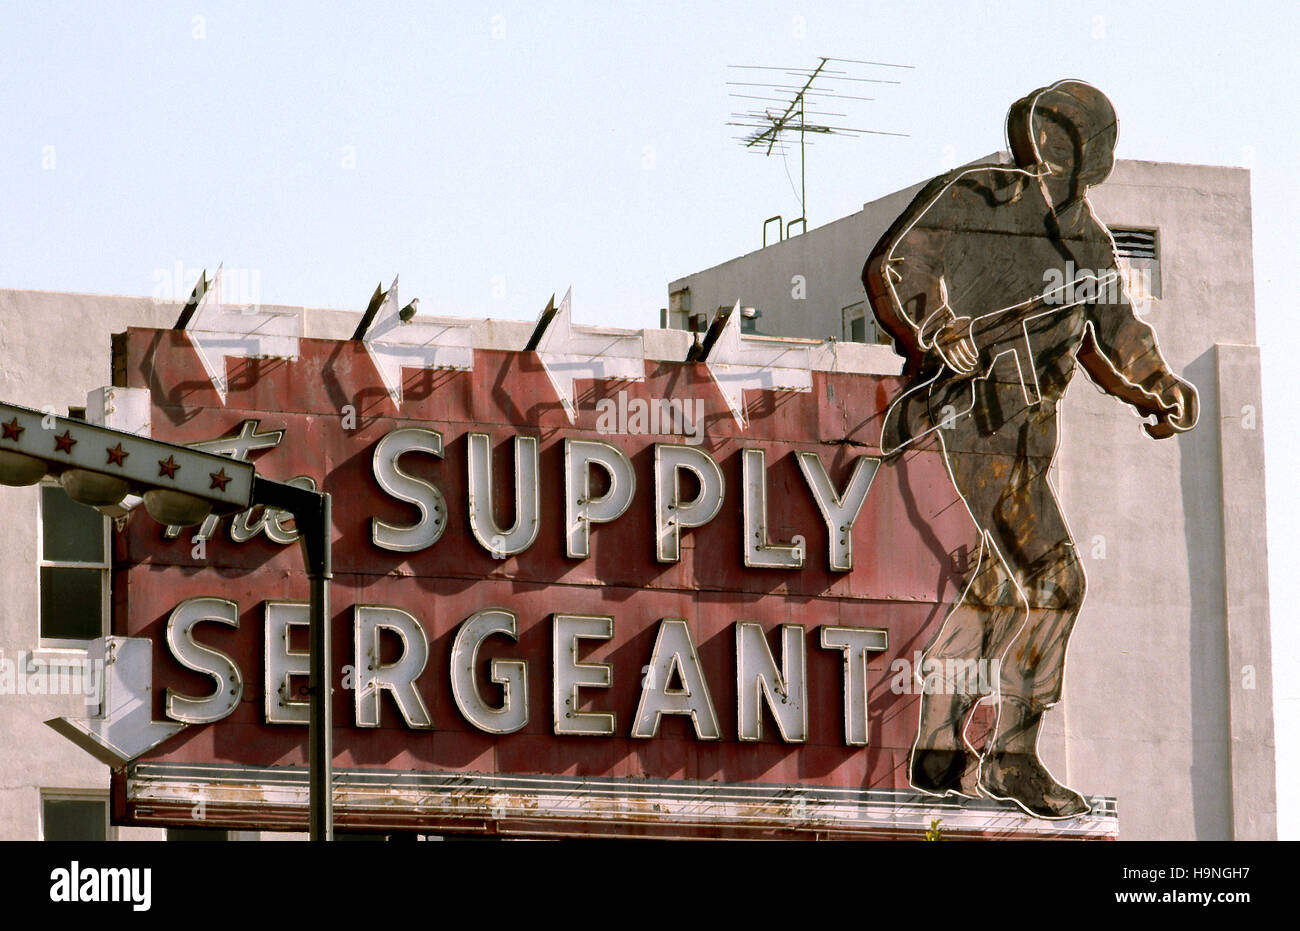 Supply Sergeant sign for army surplus store on Hollywood